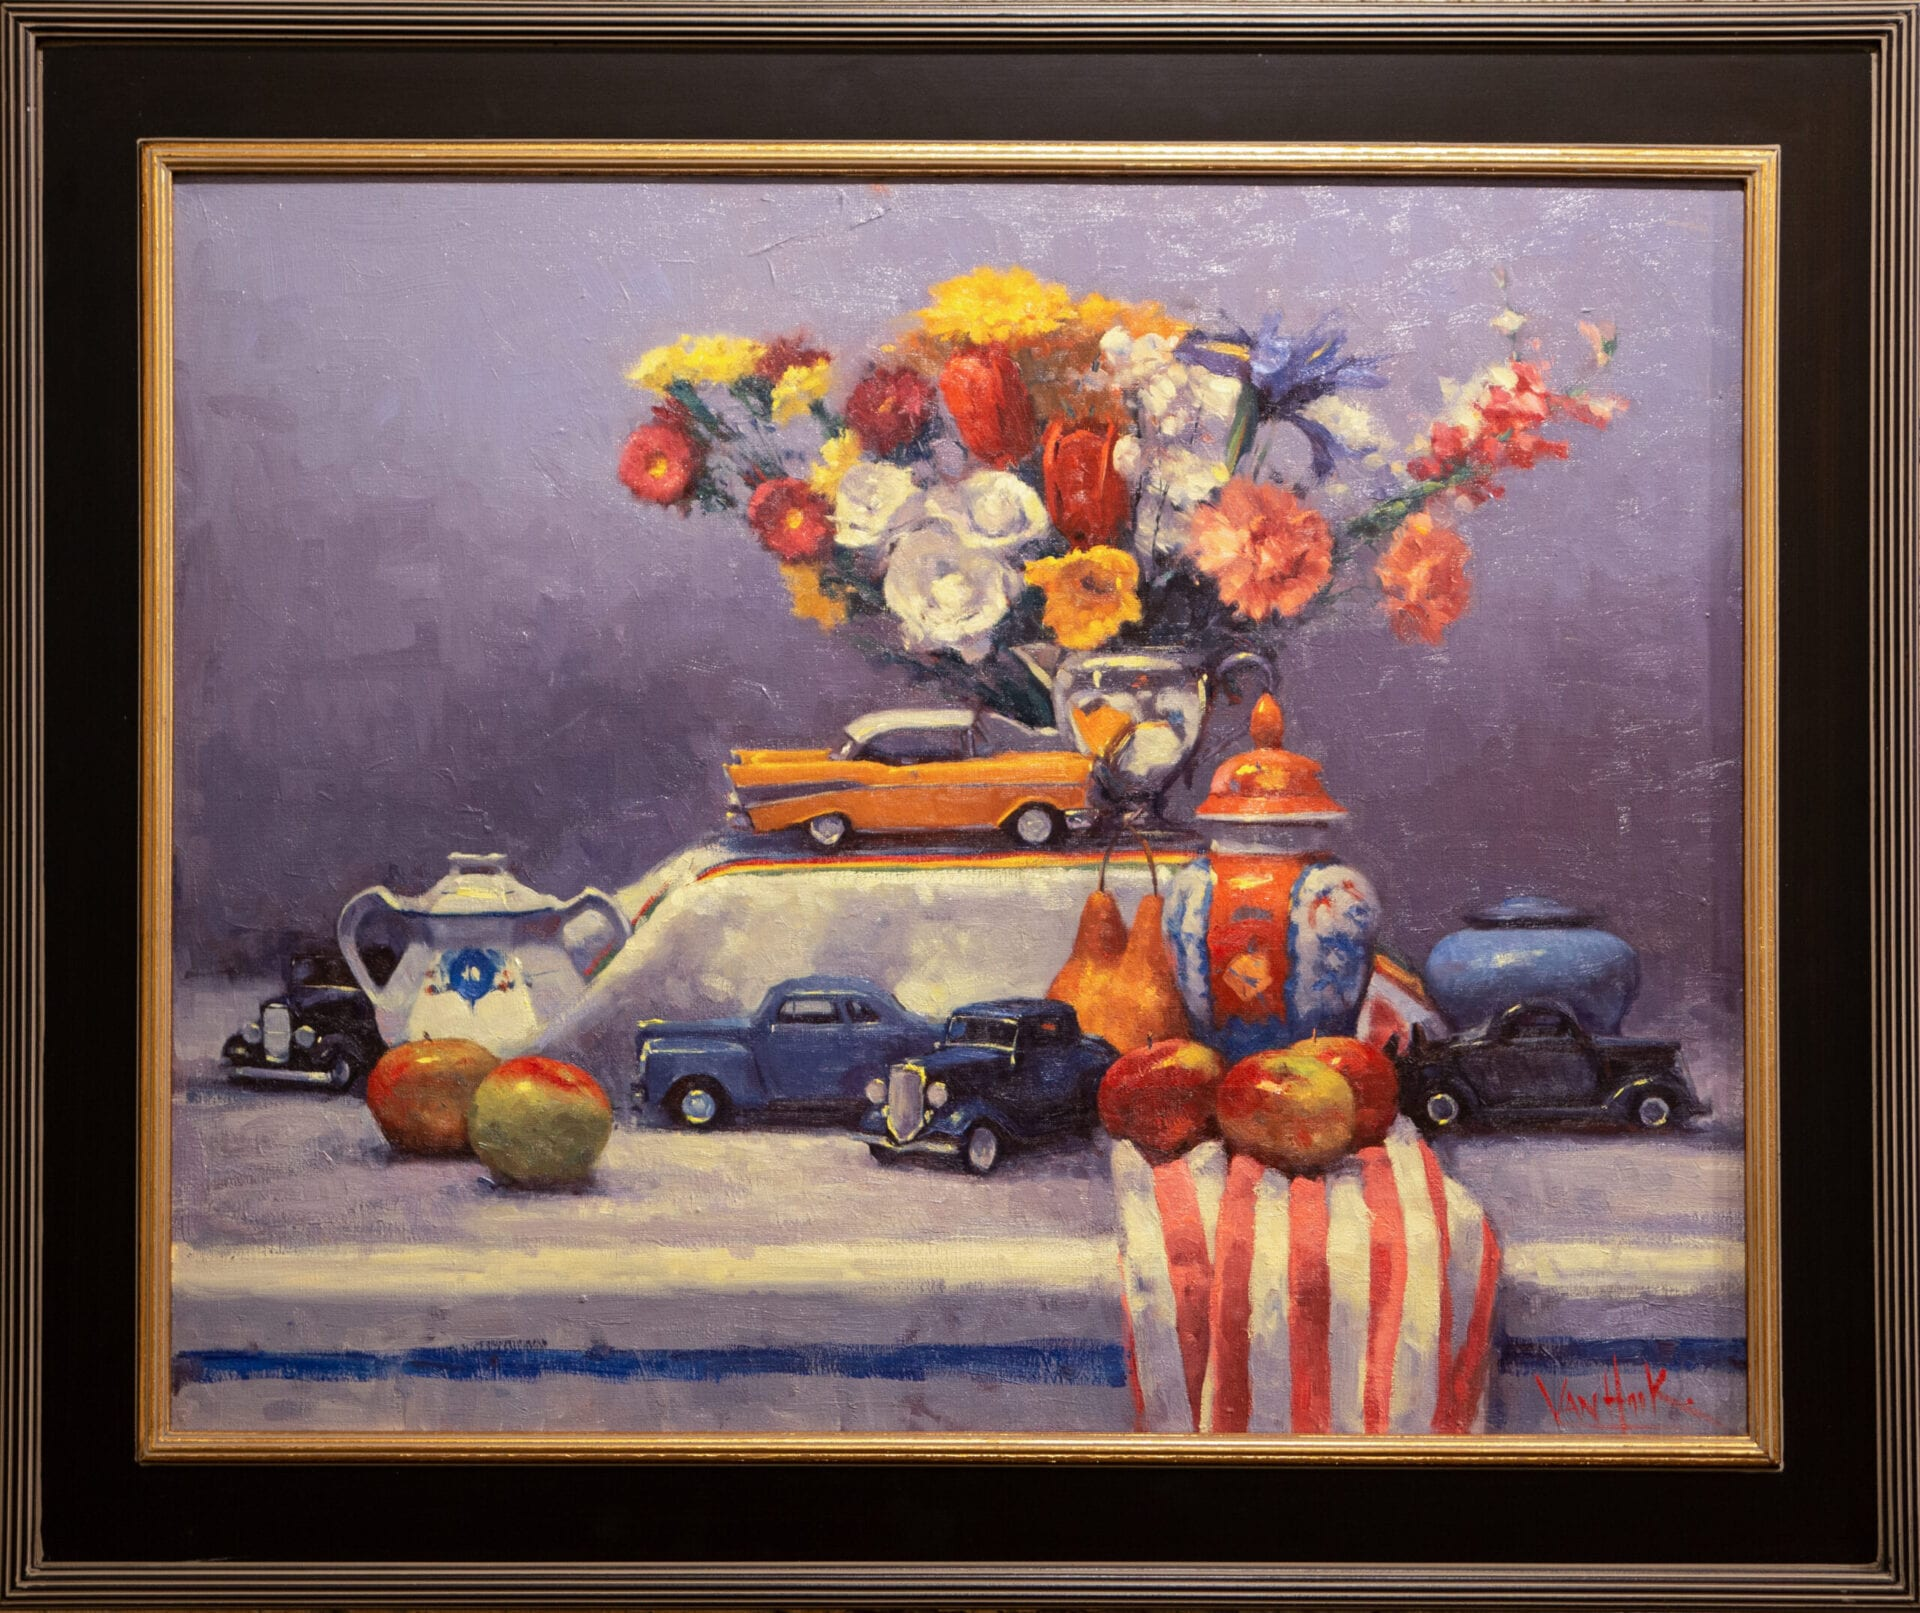 Still Life with Cars | George Van Hook | Oil | 24 x 30""